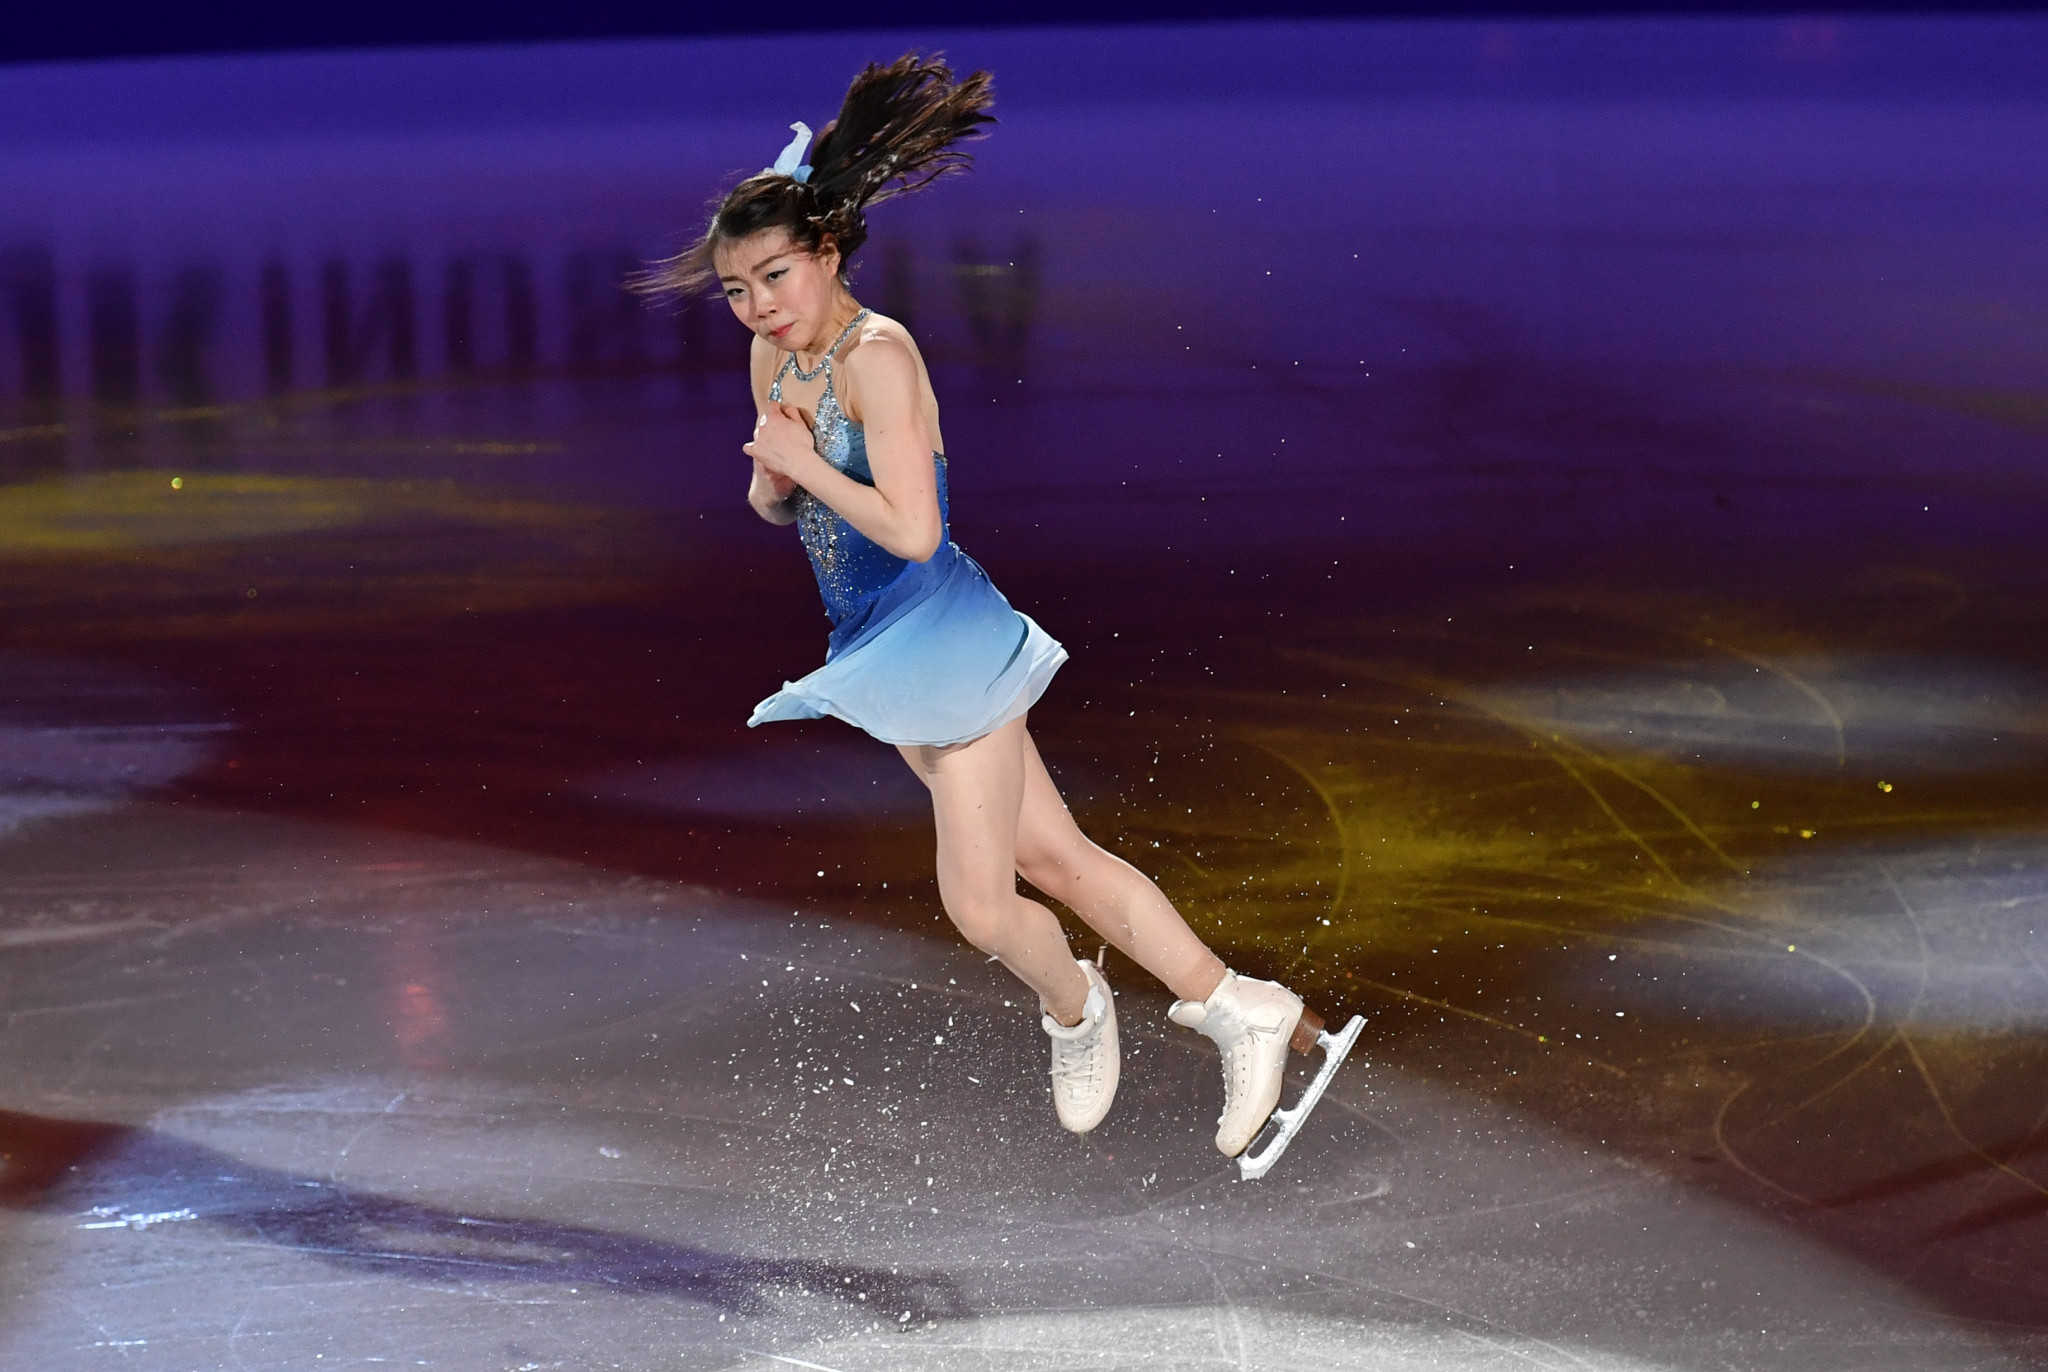 The ISU have updated the scale of values of elements and some judging guidelines to reflect current developments in figure skating ©Getty Images